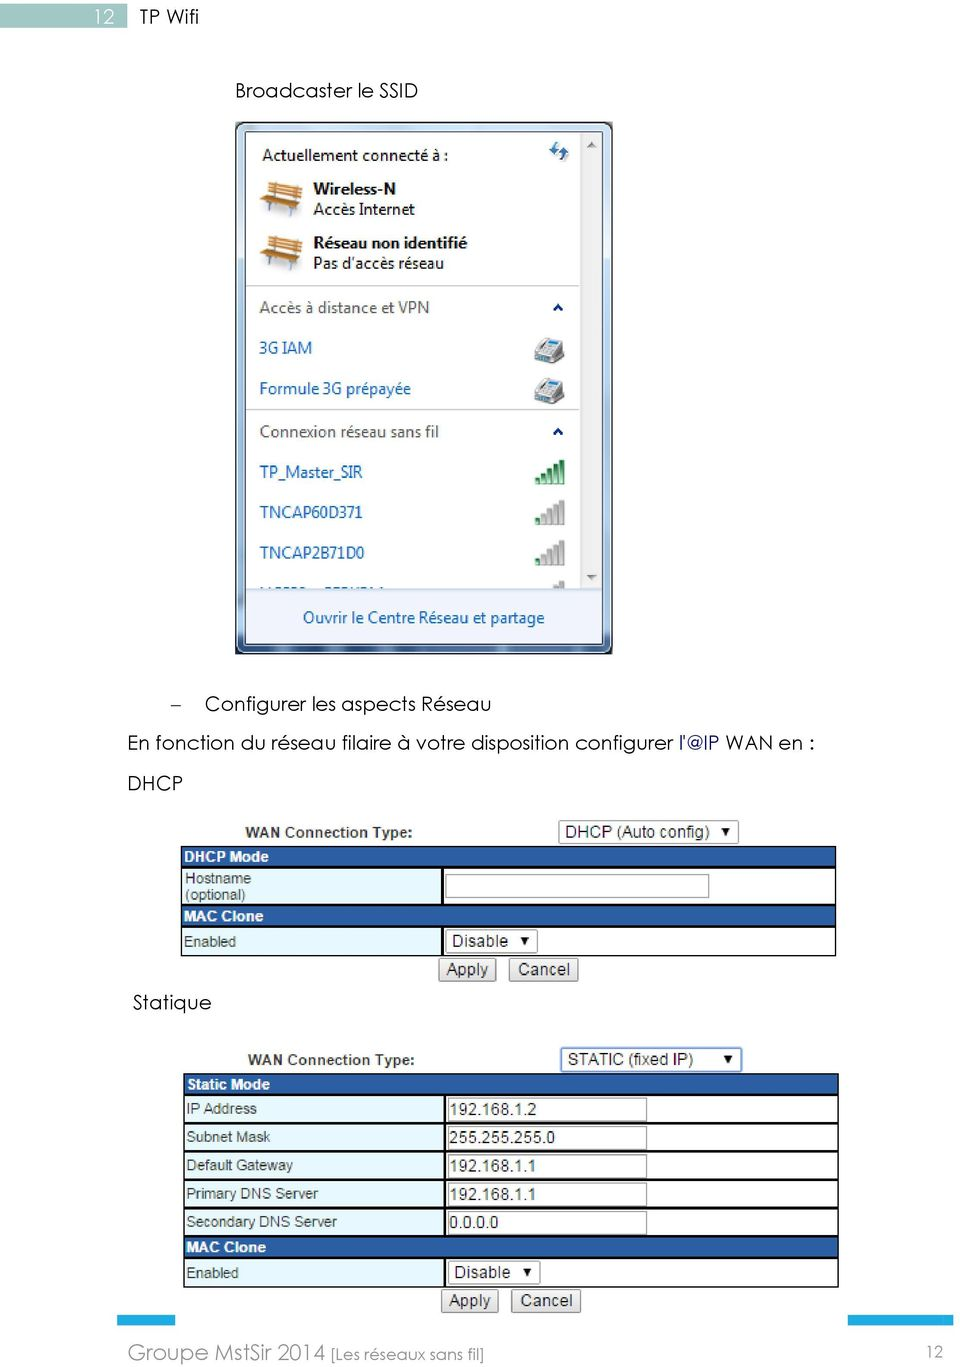 votre disposition configurer l'@ip WAN en : DHCP